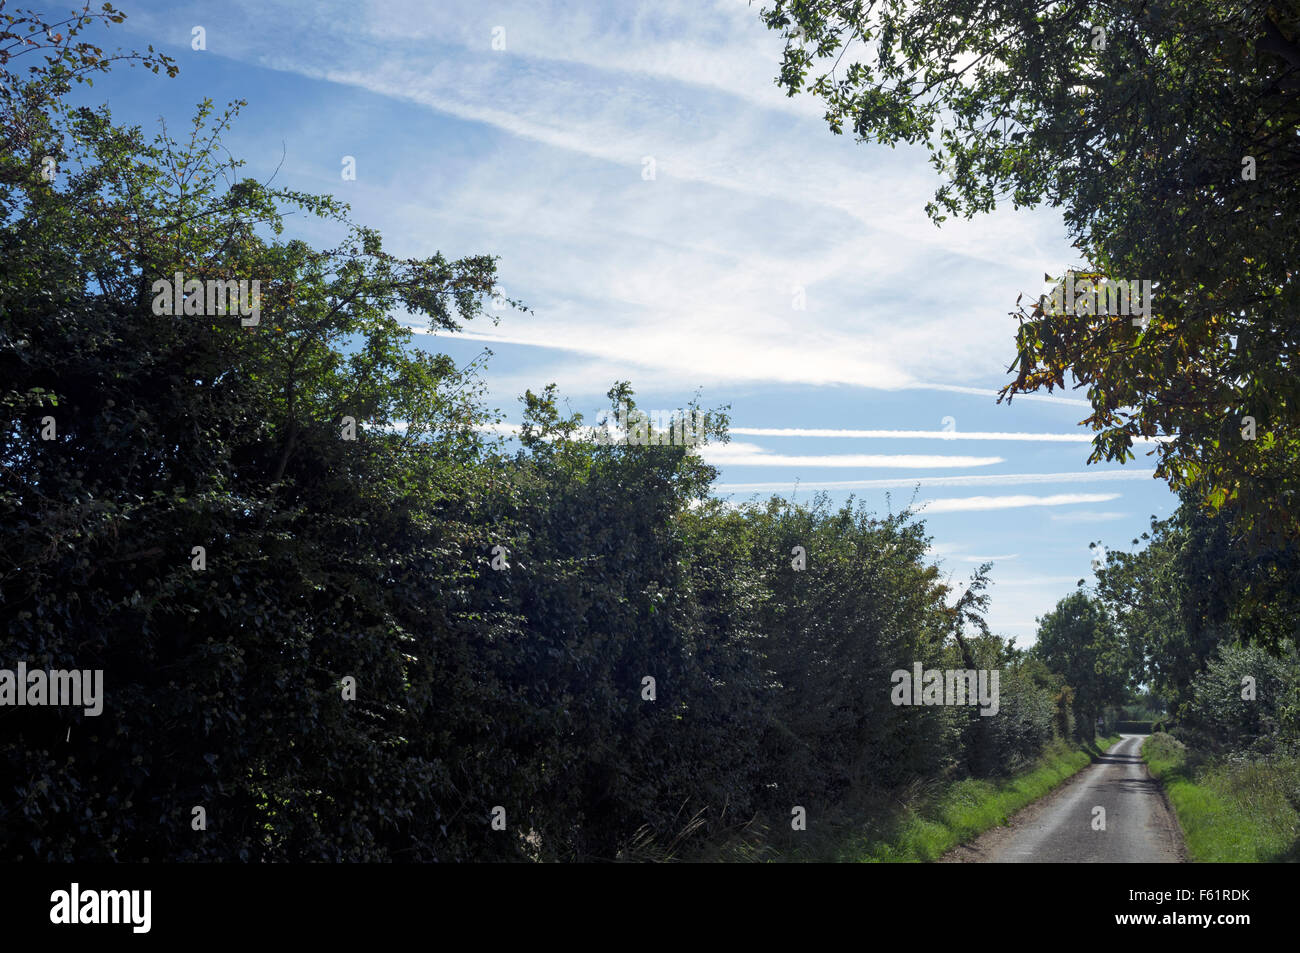 Vapour trails from commercial airliners over Bawdsey, Suffolk, UK. - Stock Image